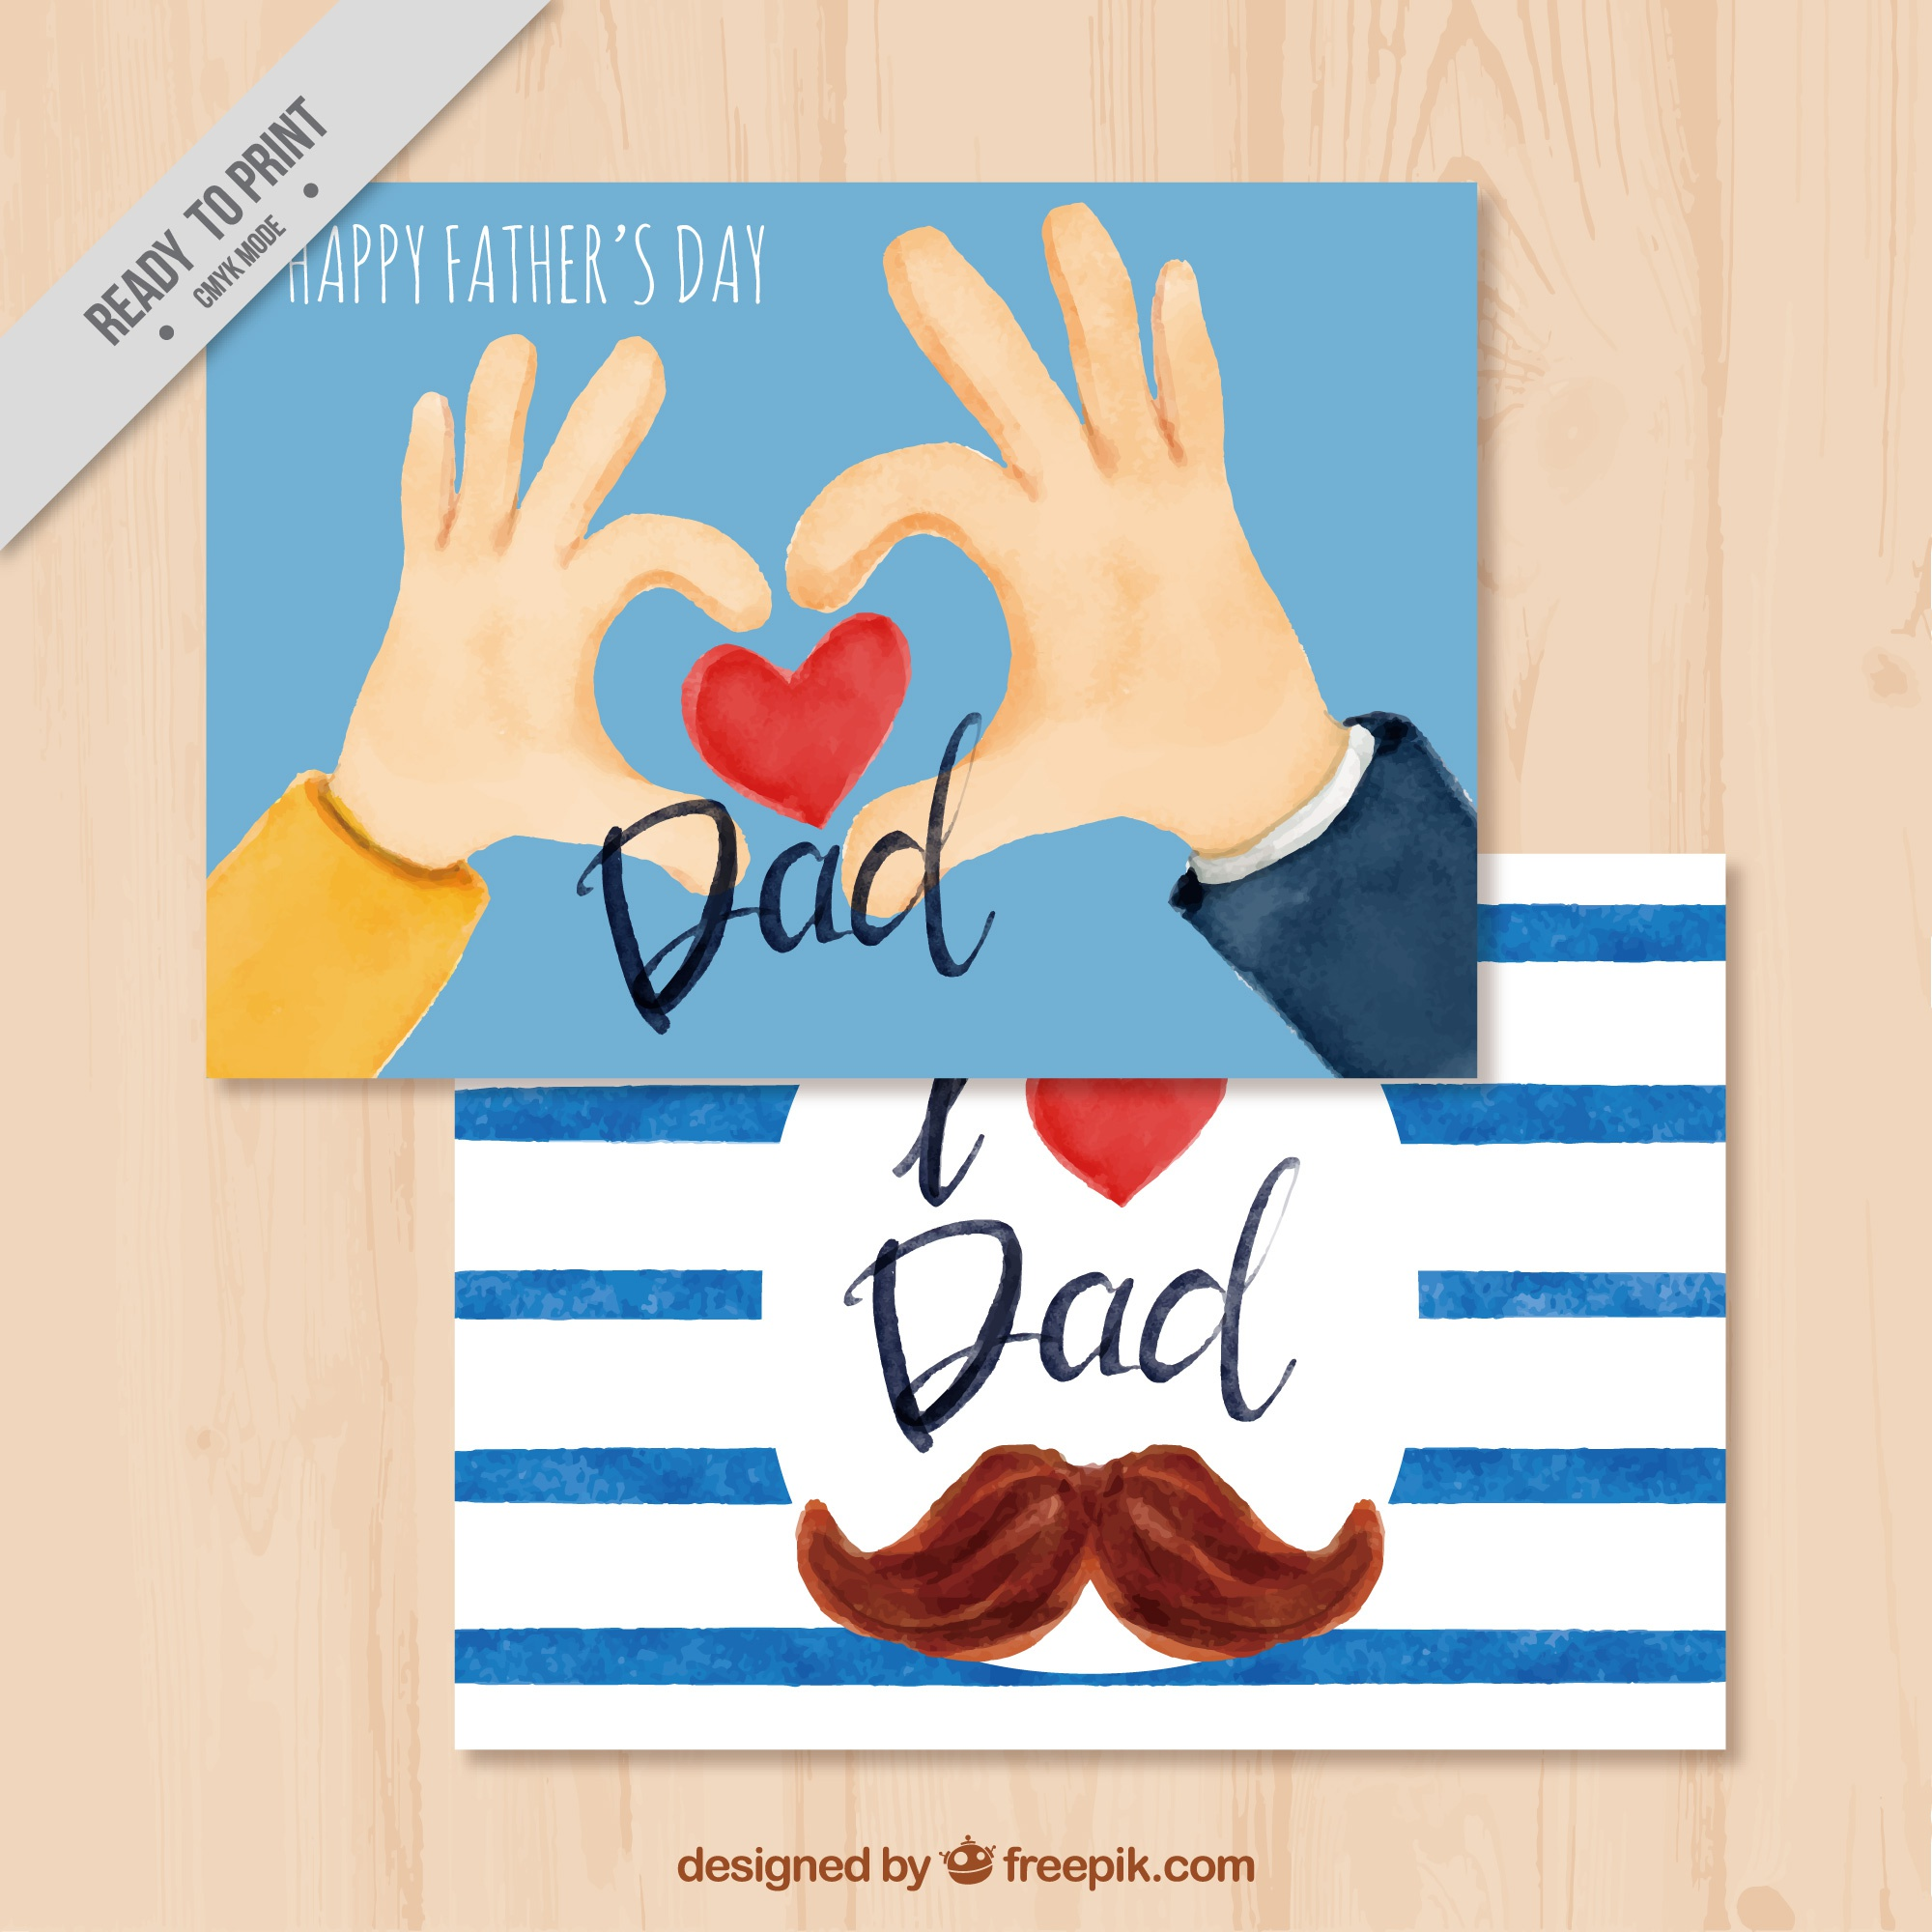 Fantastic father's day cards in watercolor style